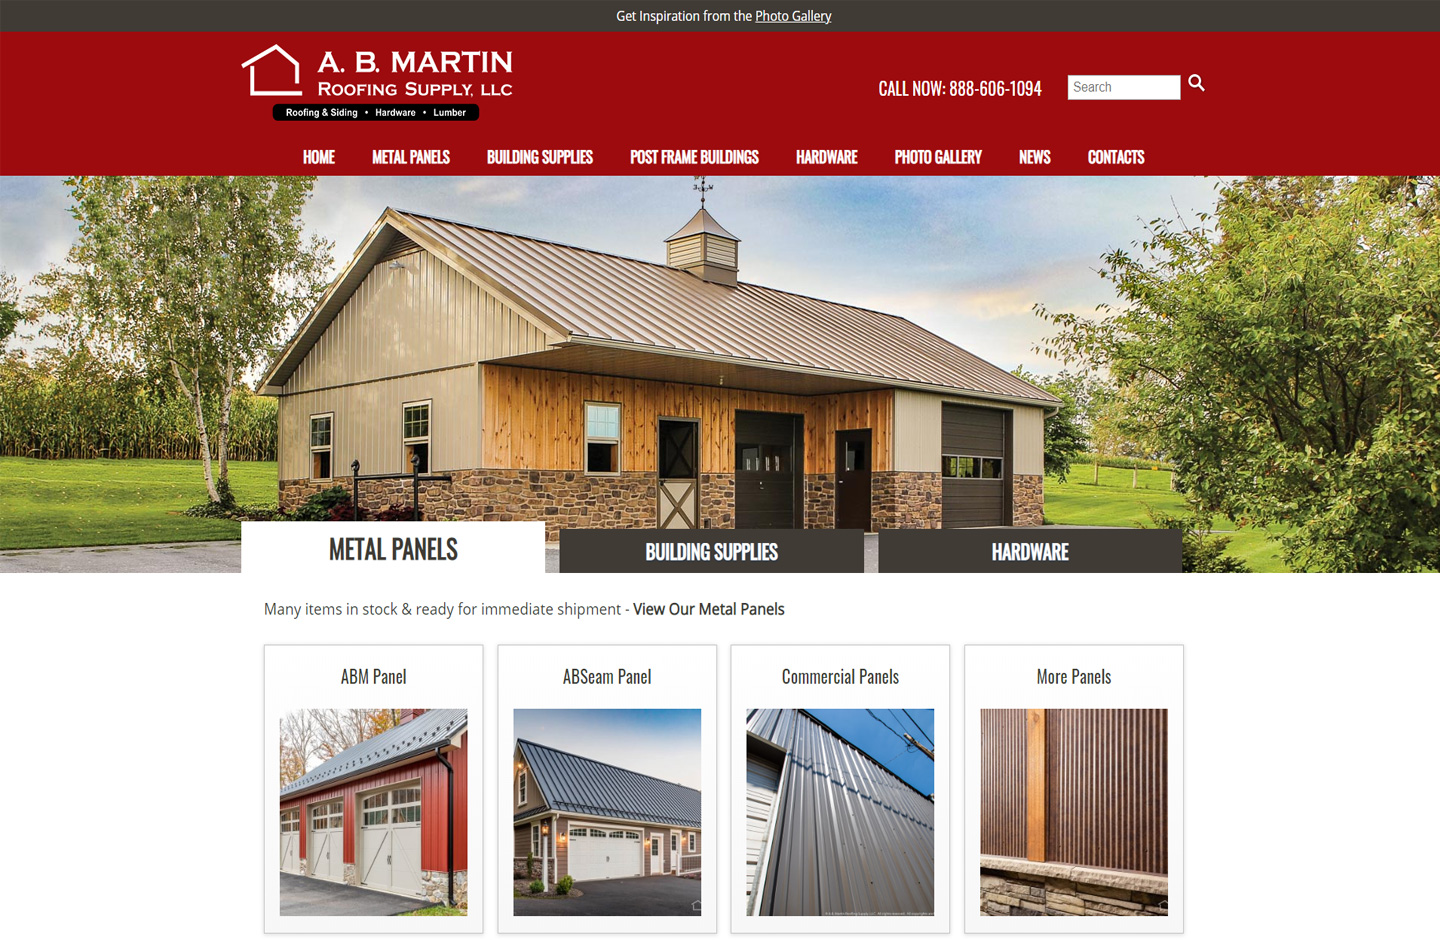 Mobile friendly website for AB Martin